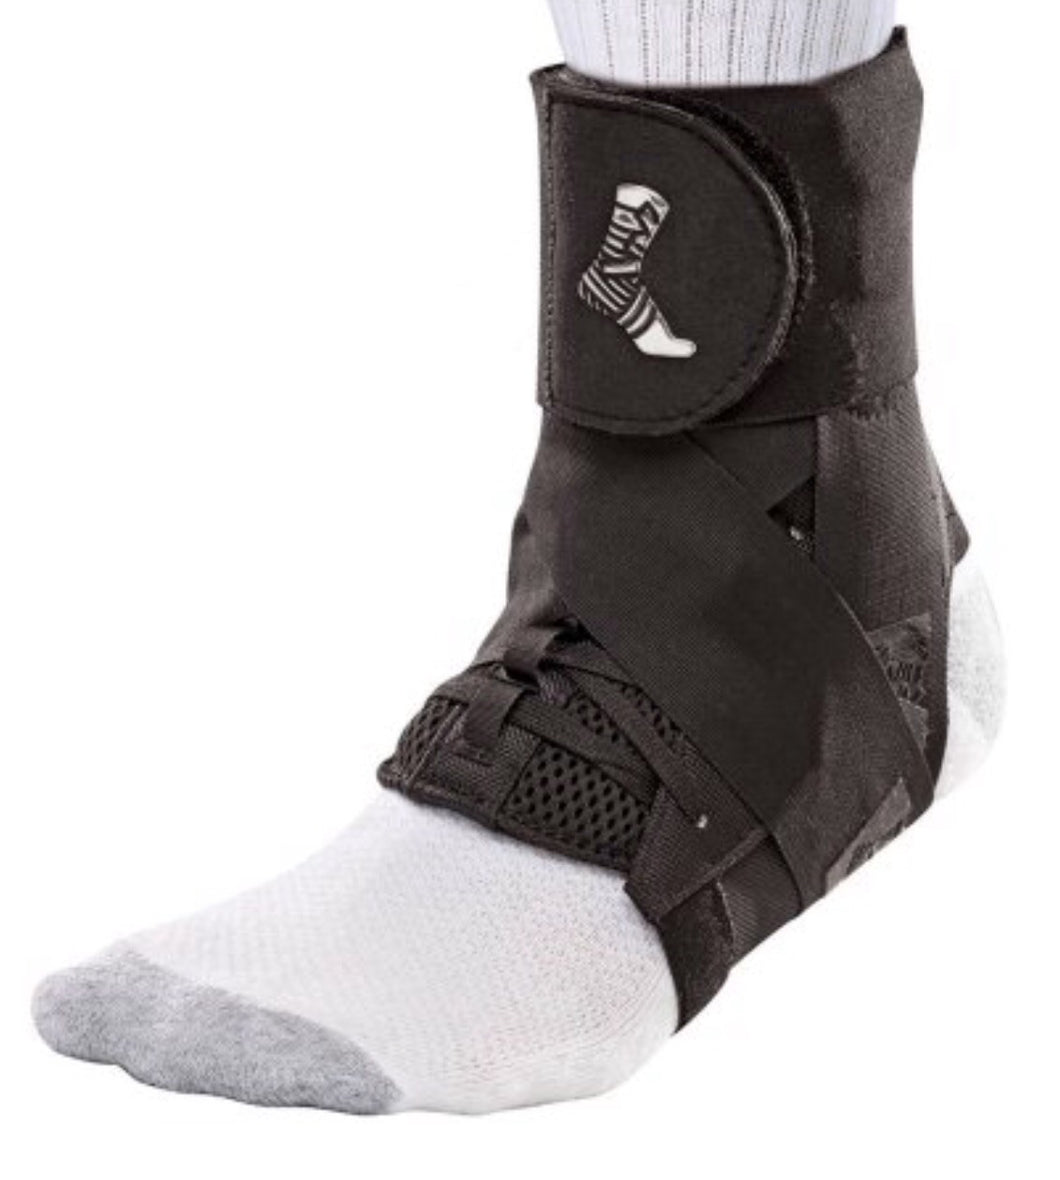 Mueller The One Ankle Brace